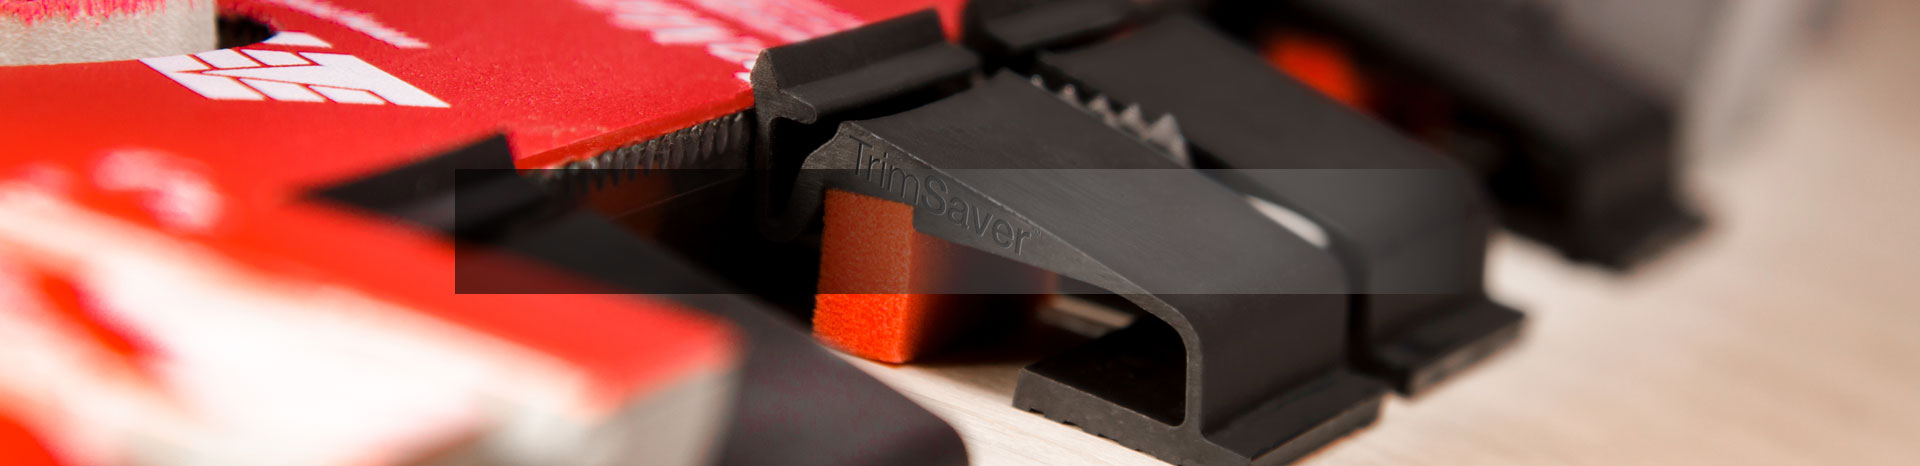 TrimSaver2_Die_RGB_1920x466_High_branded